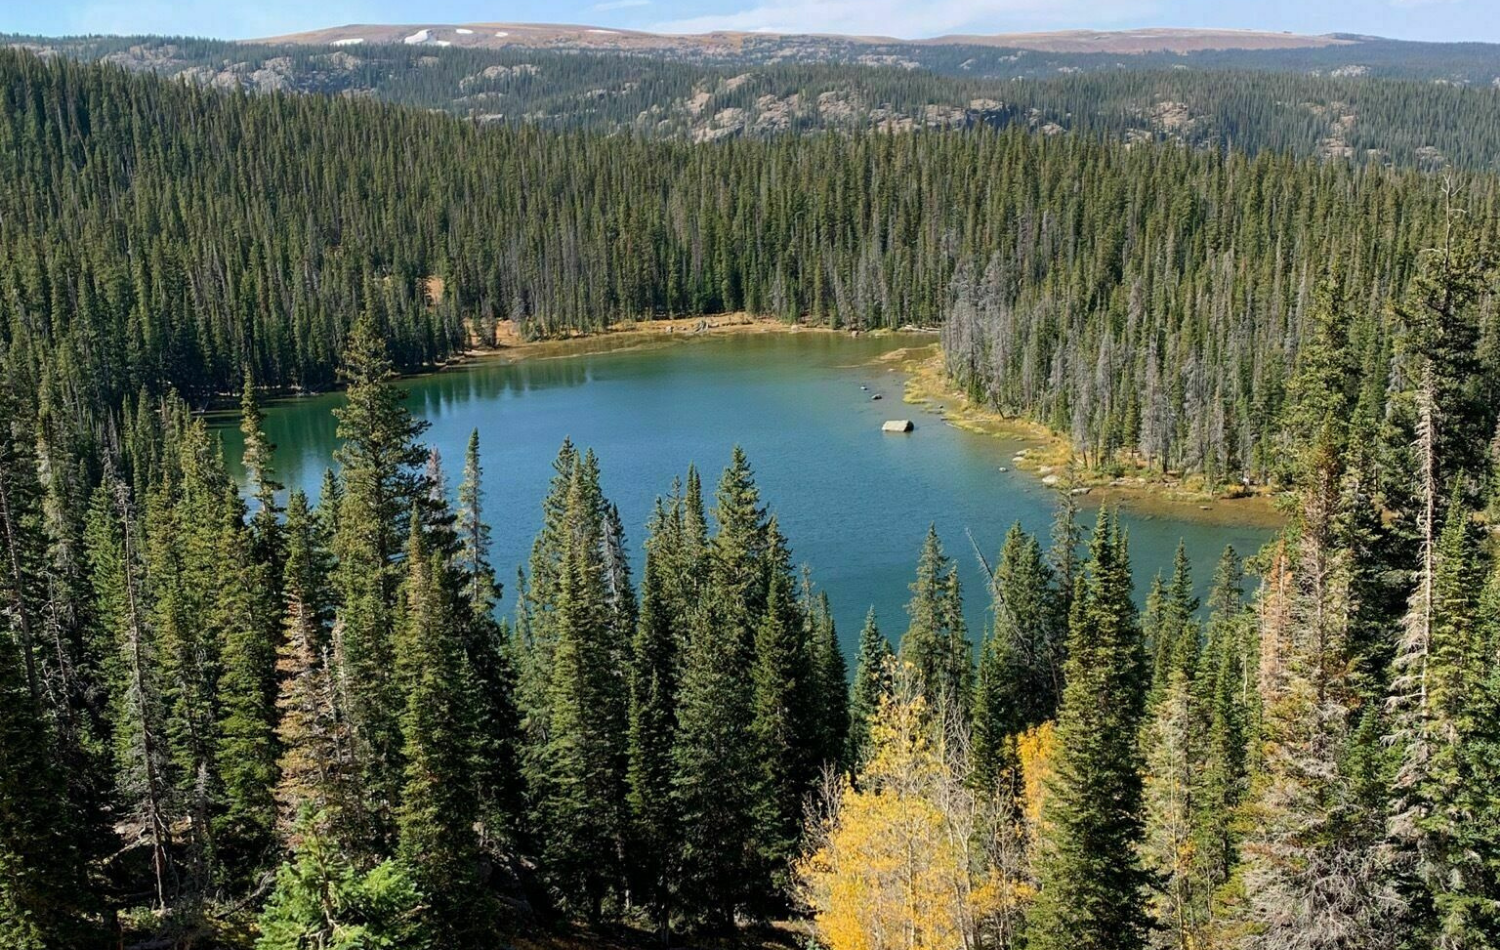 Surprise-Trailhead-to-Mirror-Lake-and-Cat-Lake-Near-Kremmling.-CO---Grand-County.png